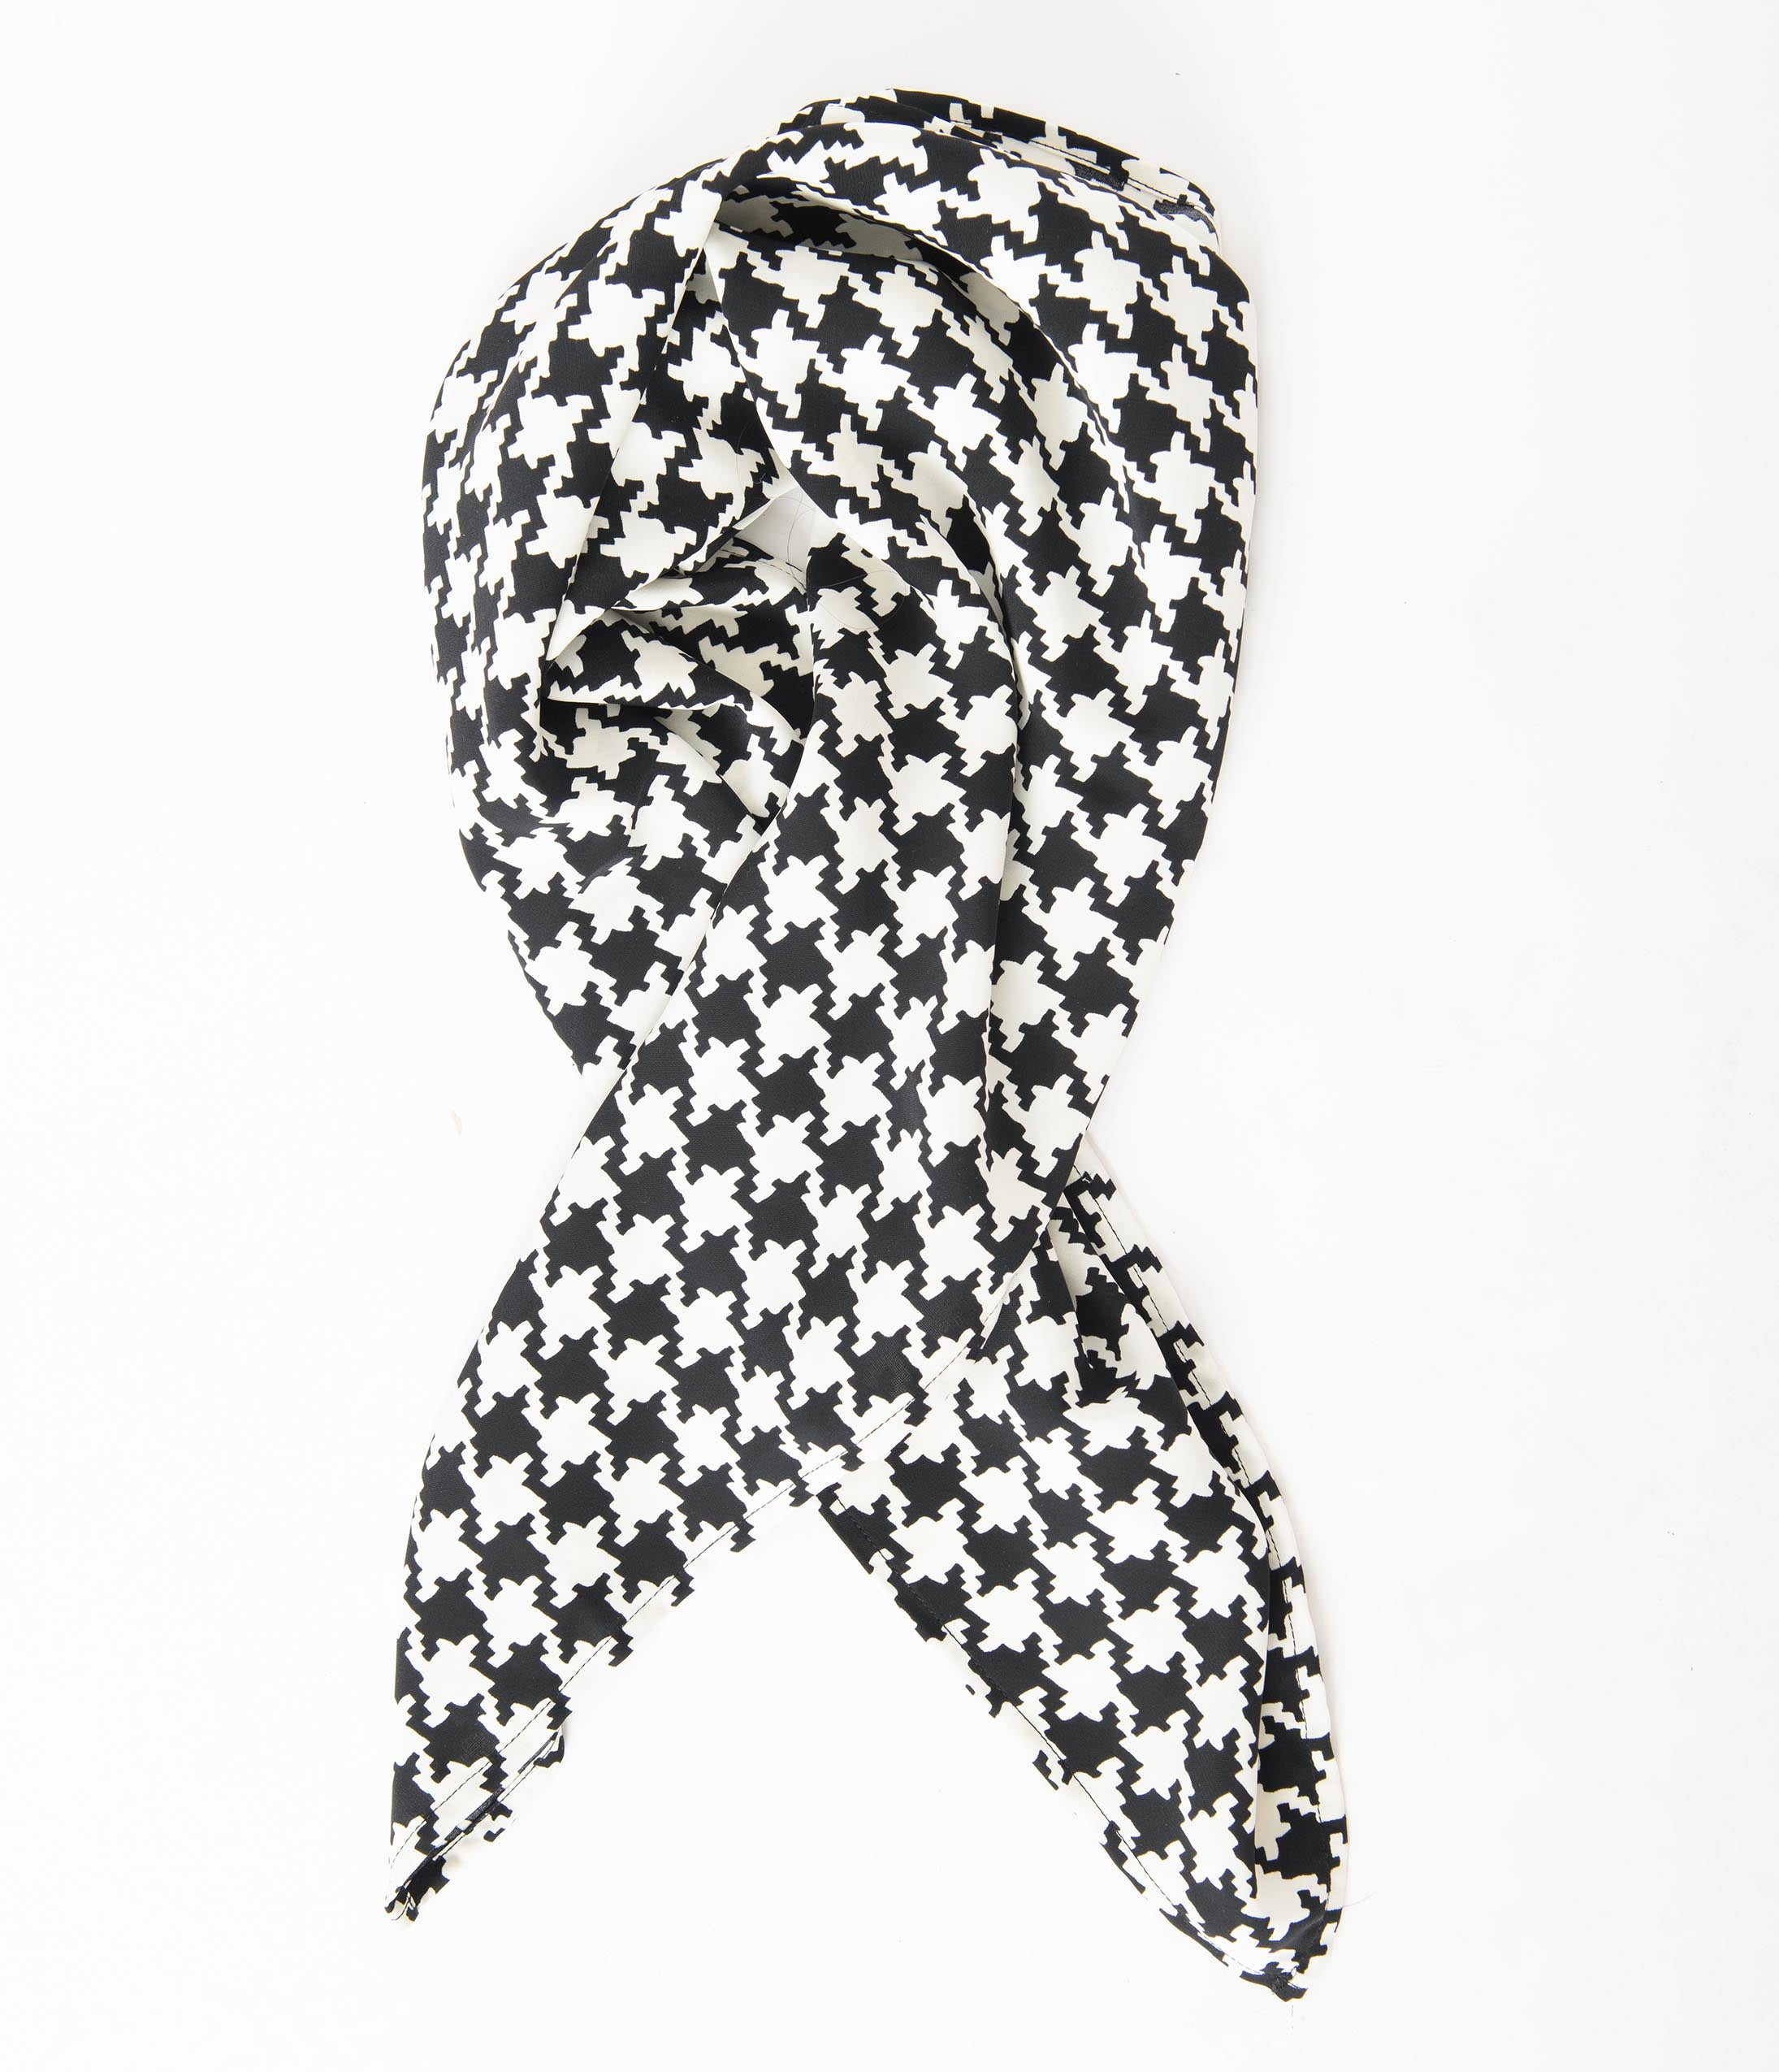 50s Hair Bandanna, Headband, Scarf, Flowers | 1950s Wigs Unique Vintage Pin-Up Black  White Houndstooth Hair Scarf $14.00 AT vintagedancer.com